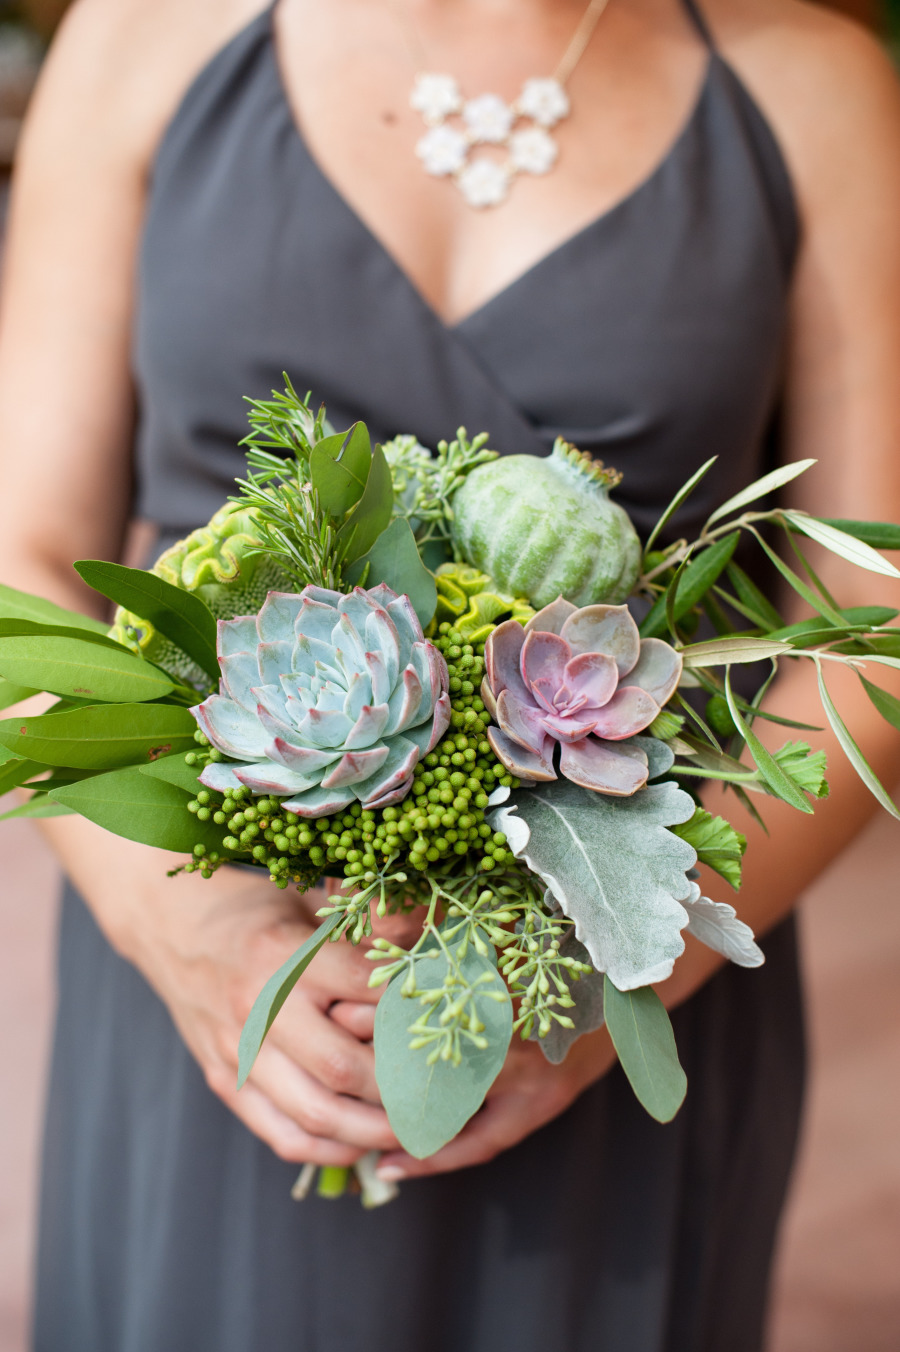 Image by Grazier Photography via Style Me Pretty